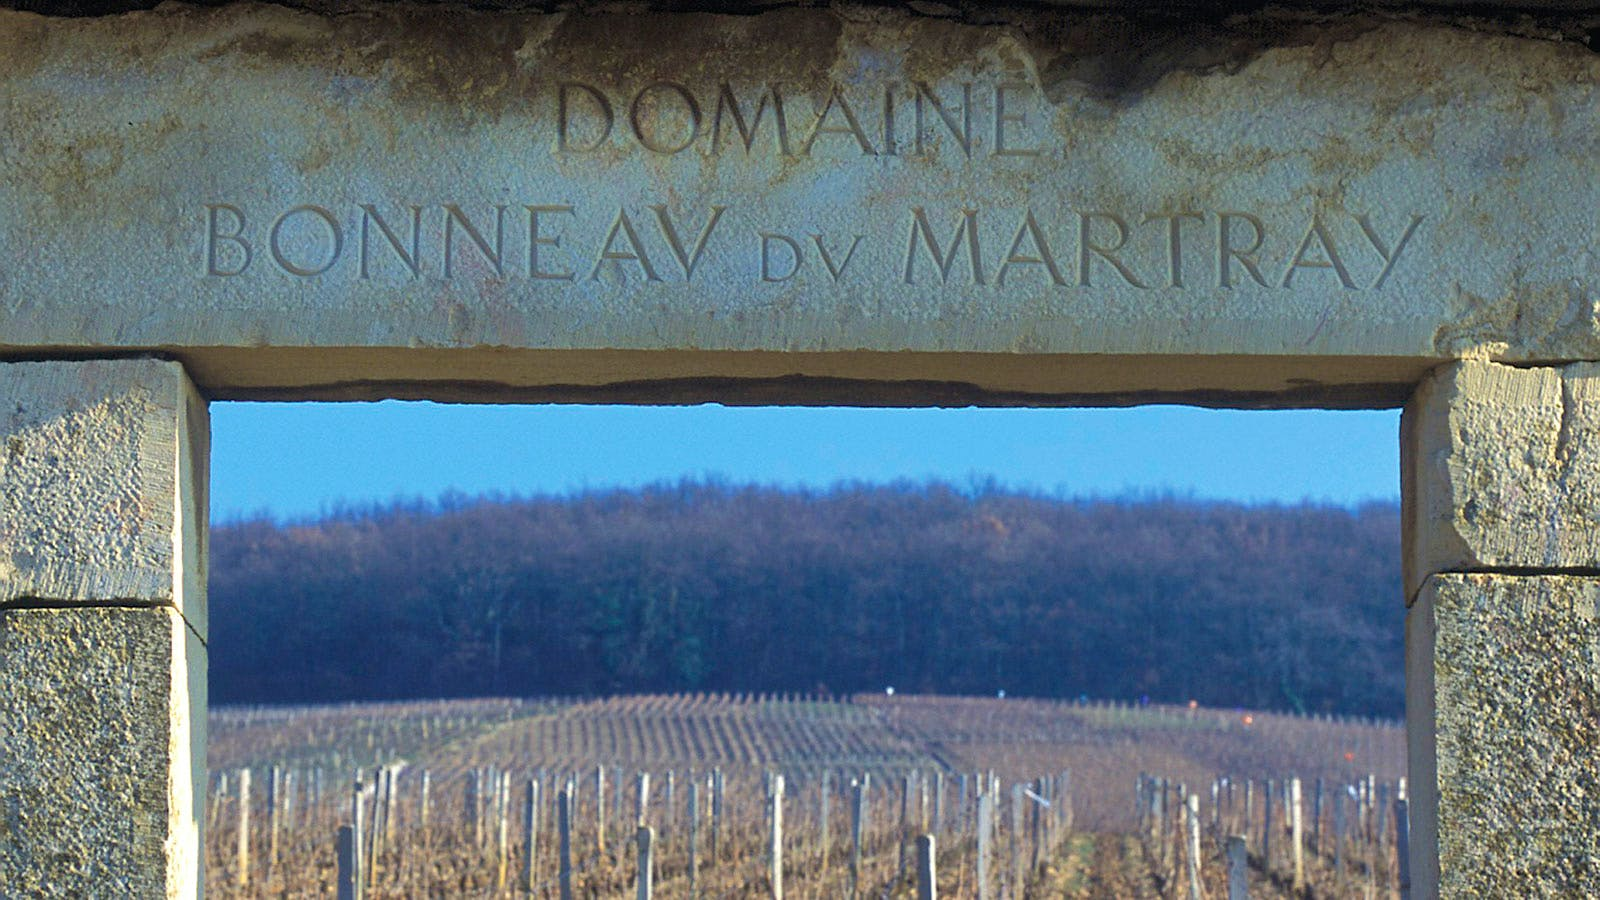 Screaming Eagle Owner Buys Majority Stake in Burgundy's Bonneau du Martray